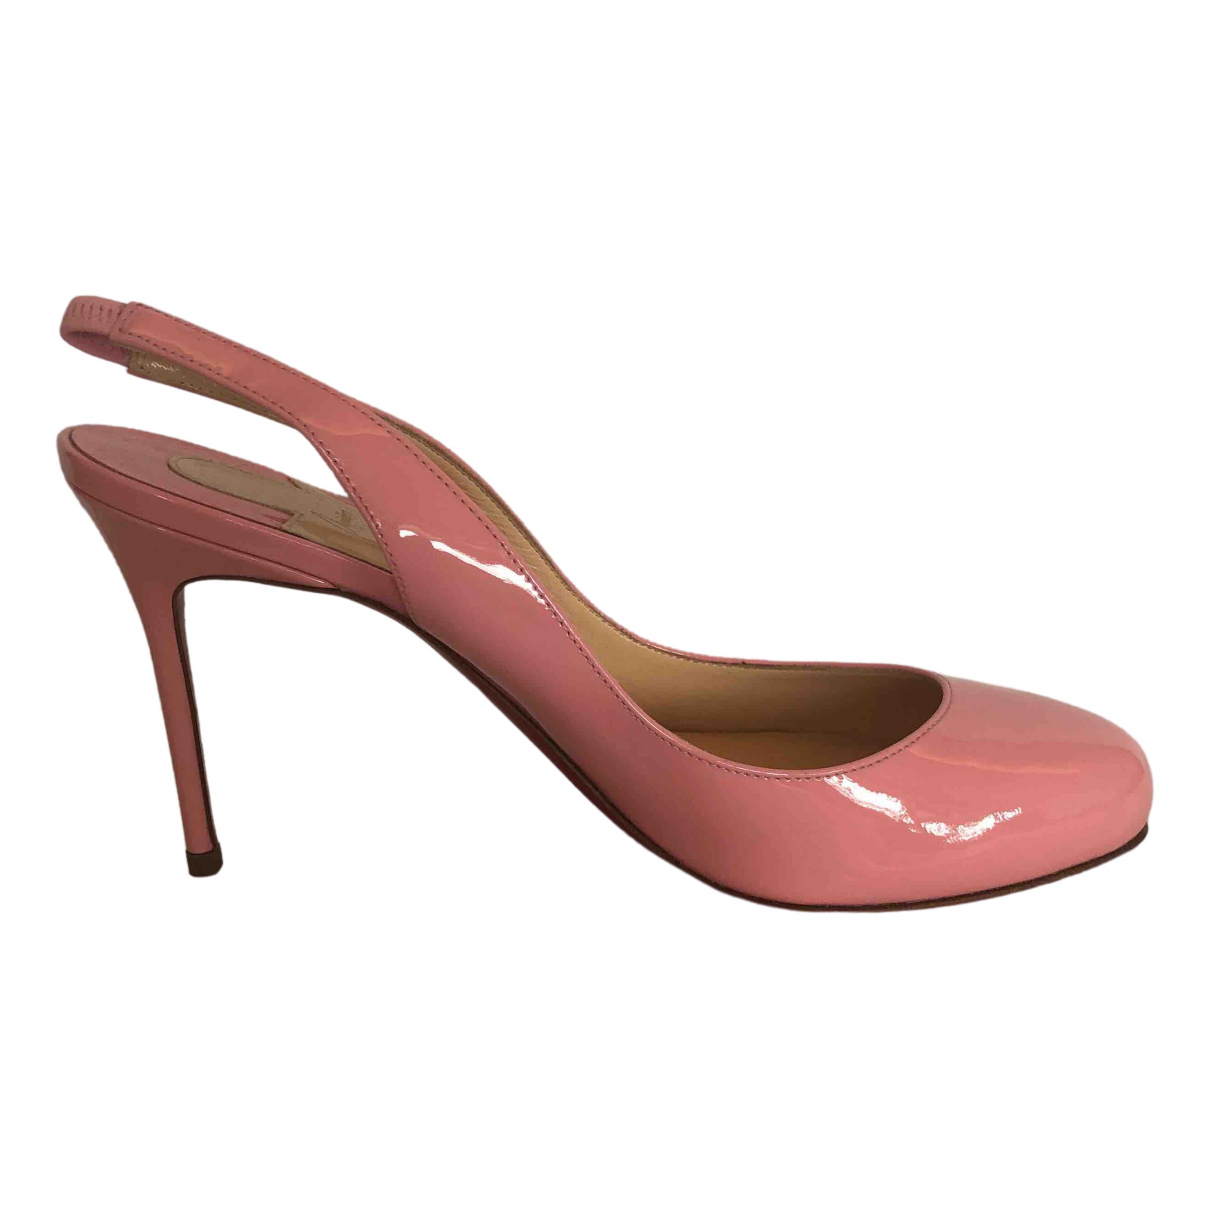 Christian Louboutin Simple pump Pink Patent leather Heels for Women 37 EU